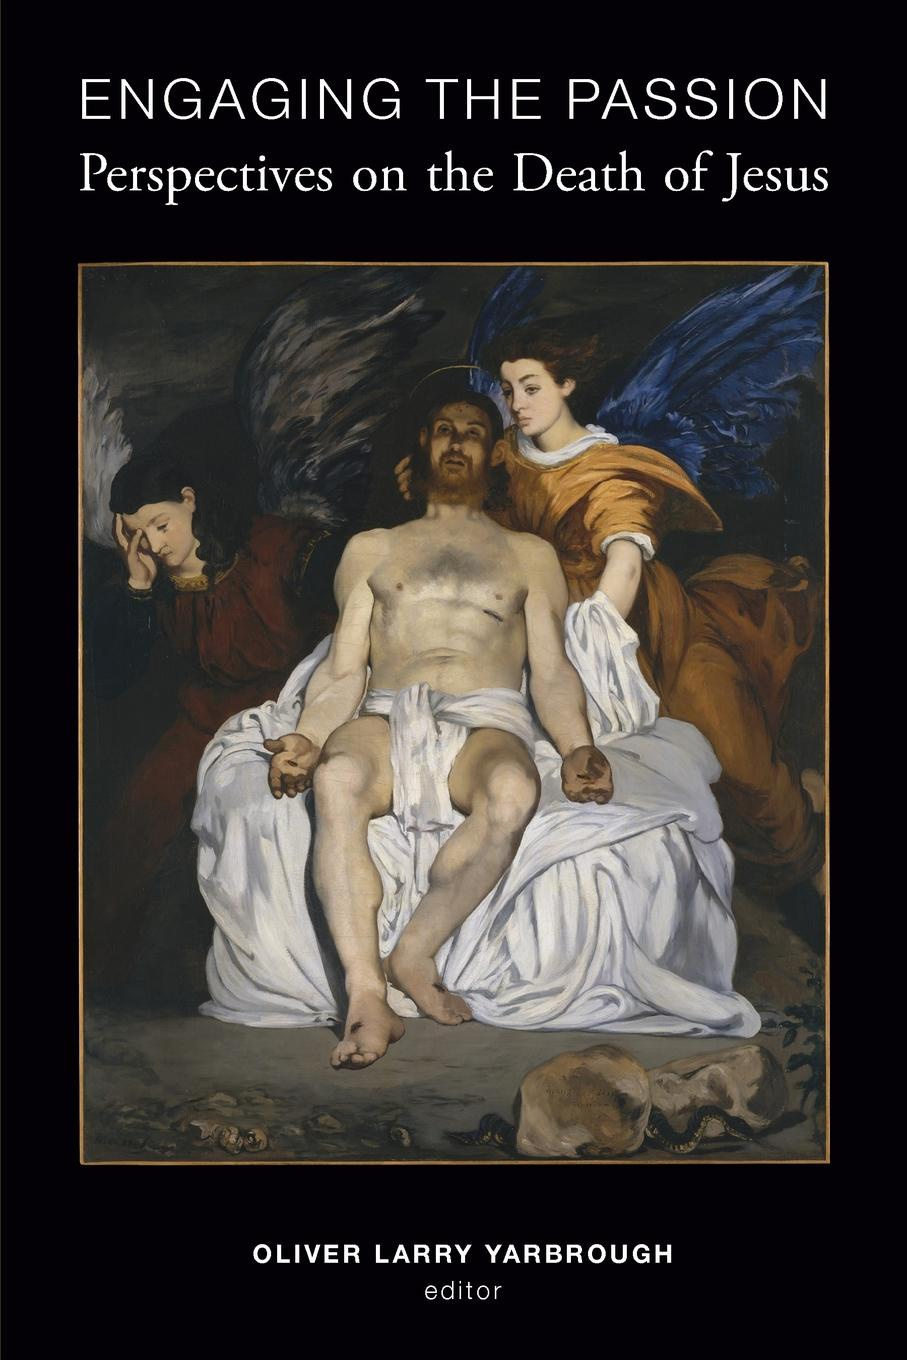 Engaging the Passion. Perspectives on the Death of Jesus